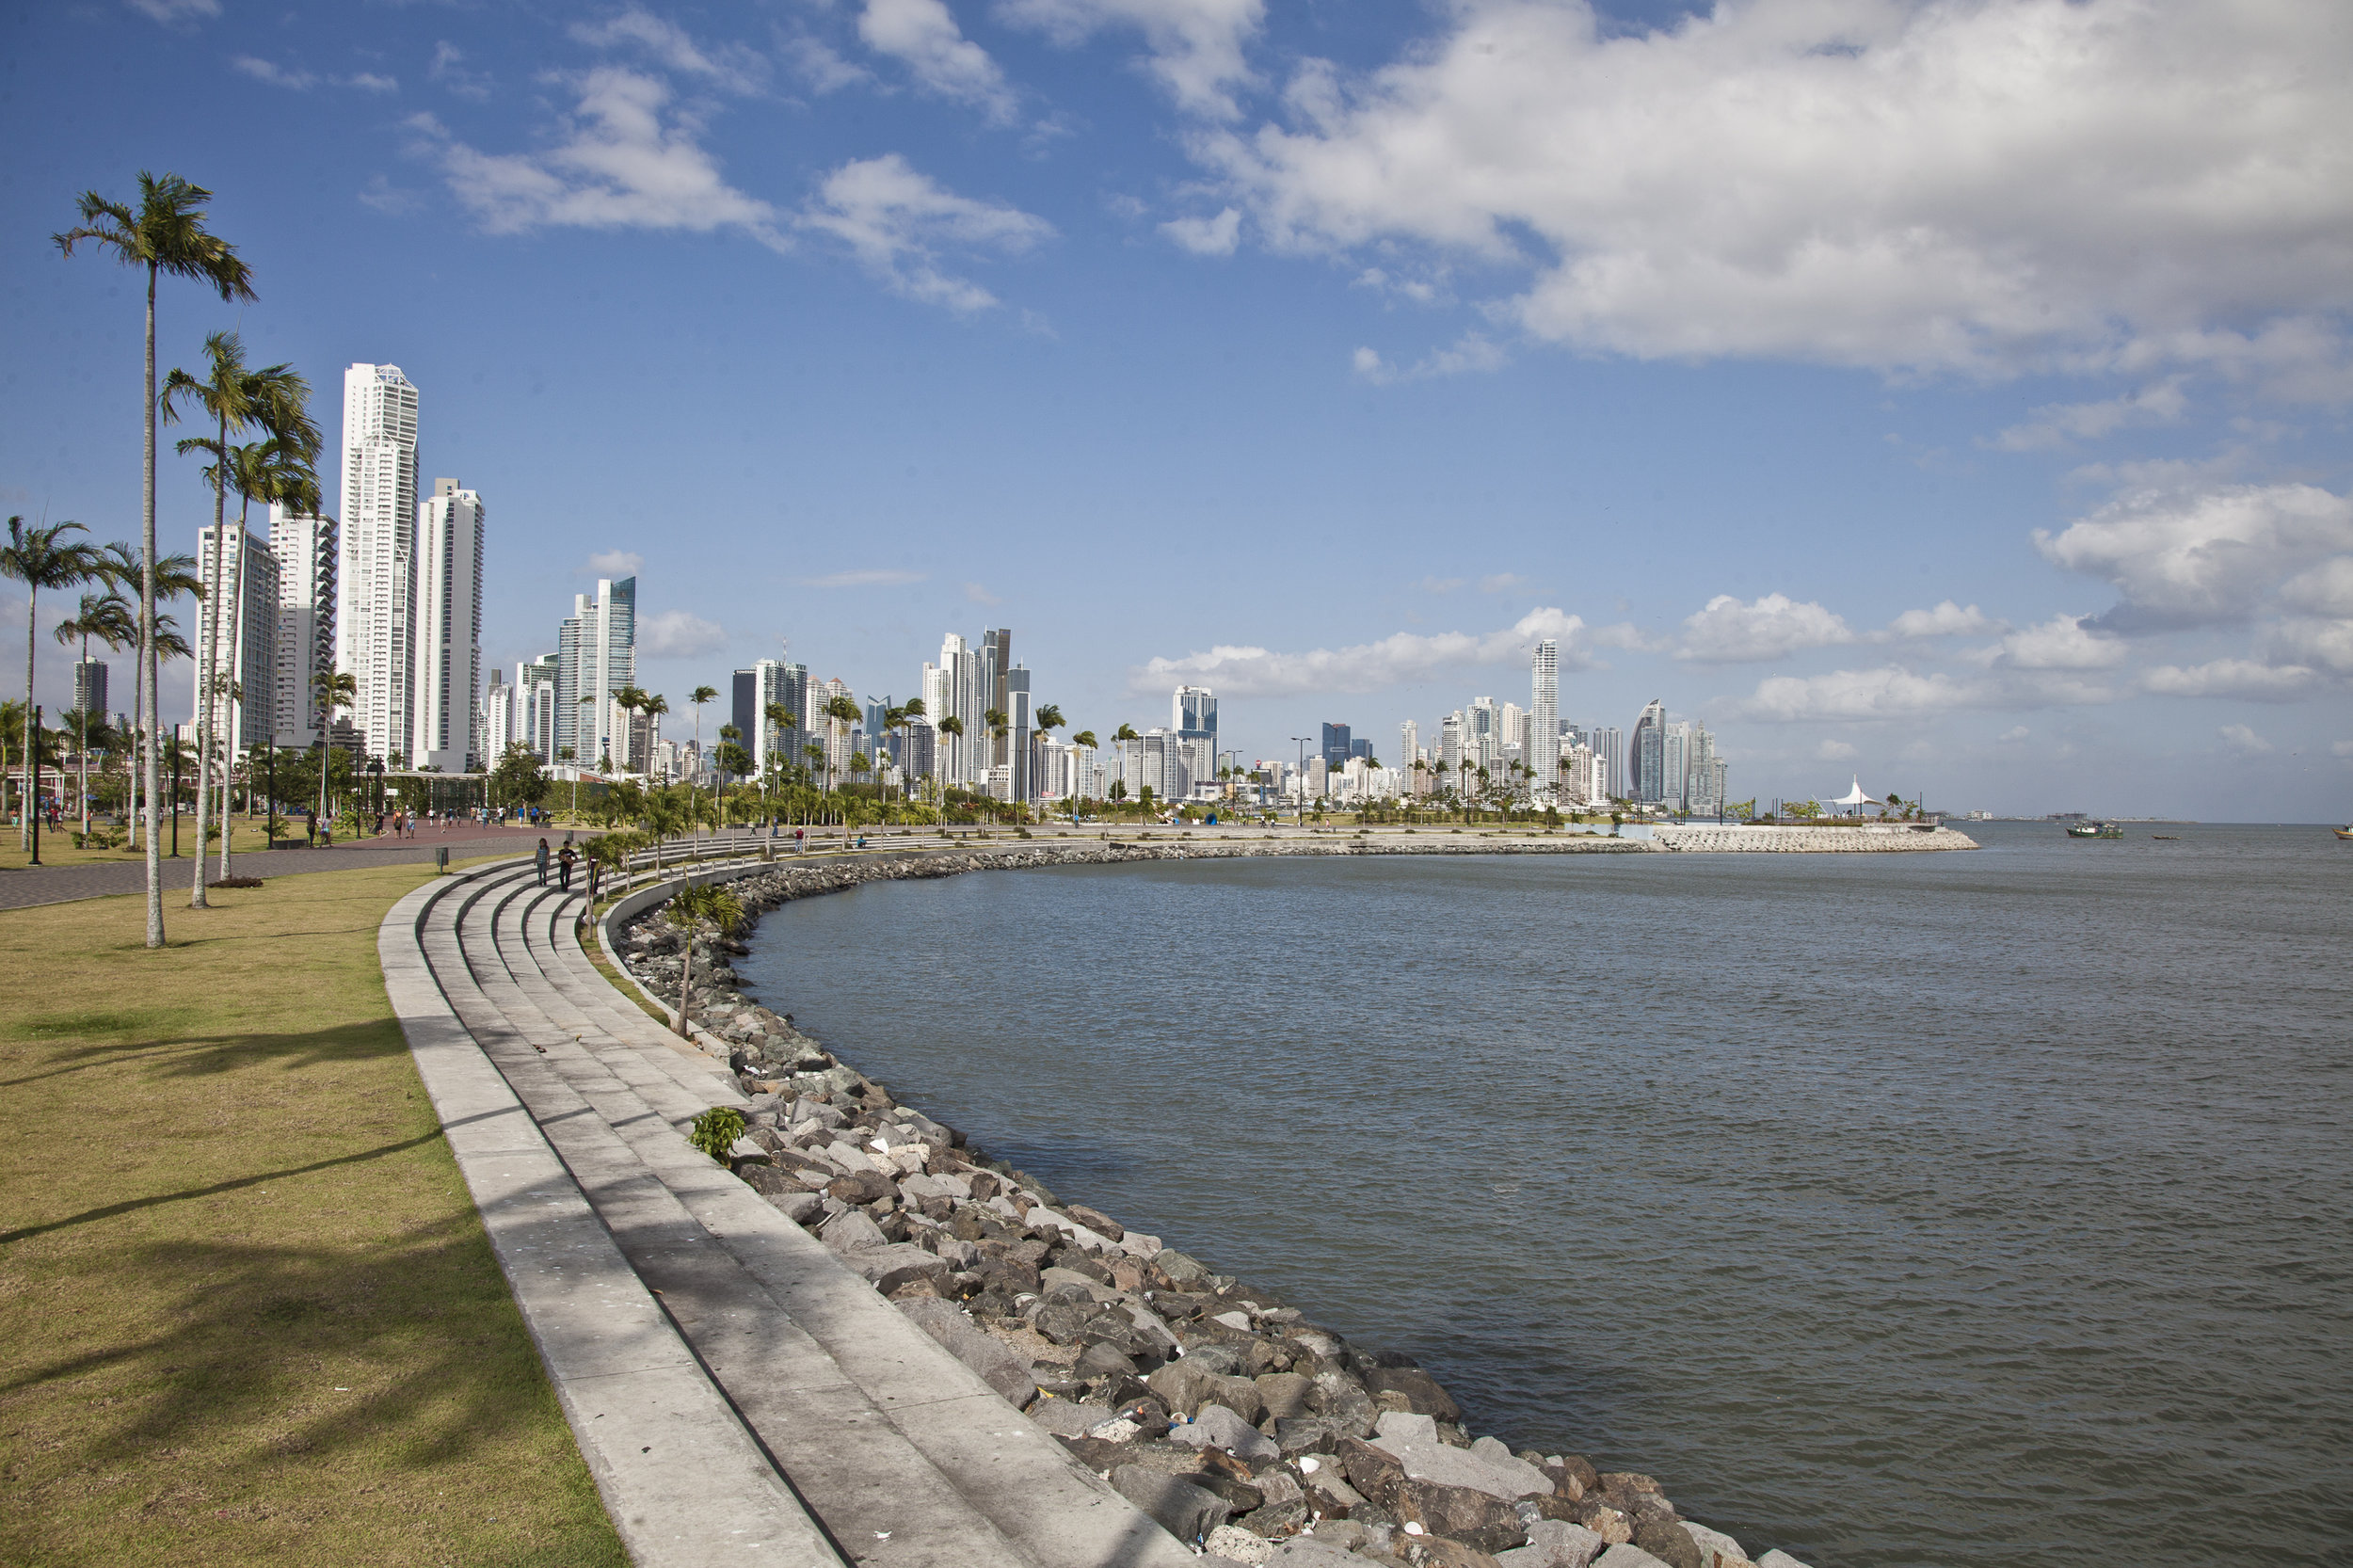 Panama - Across the Blue Planet